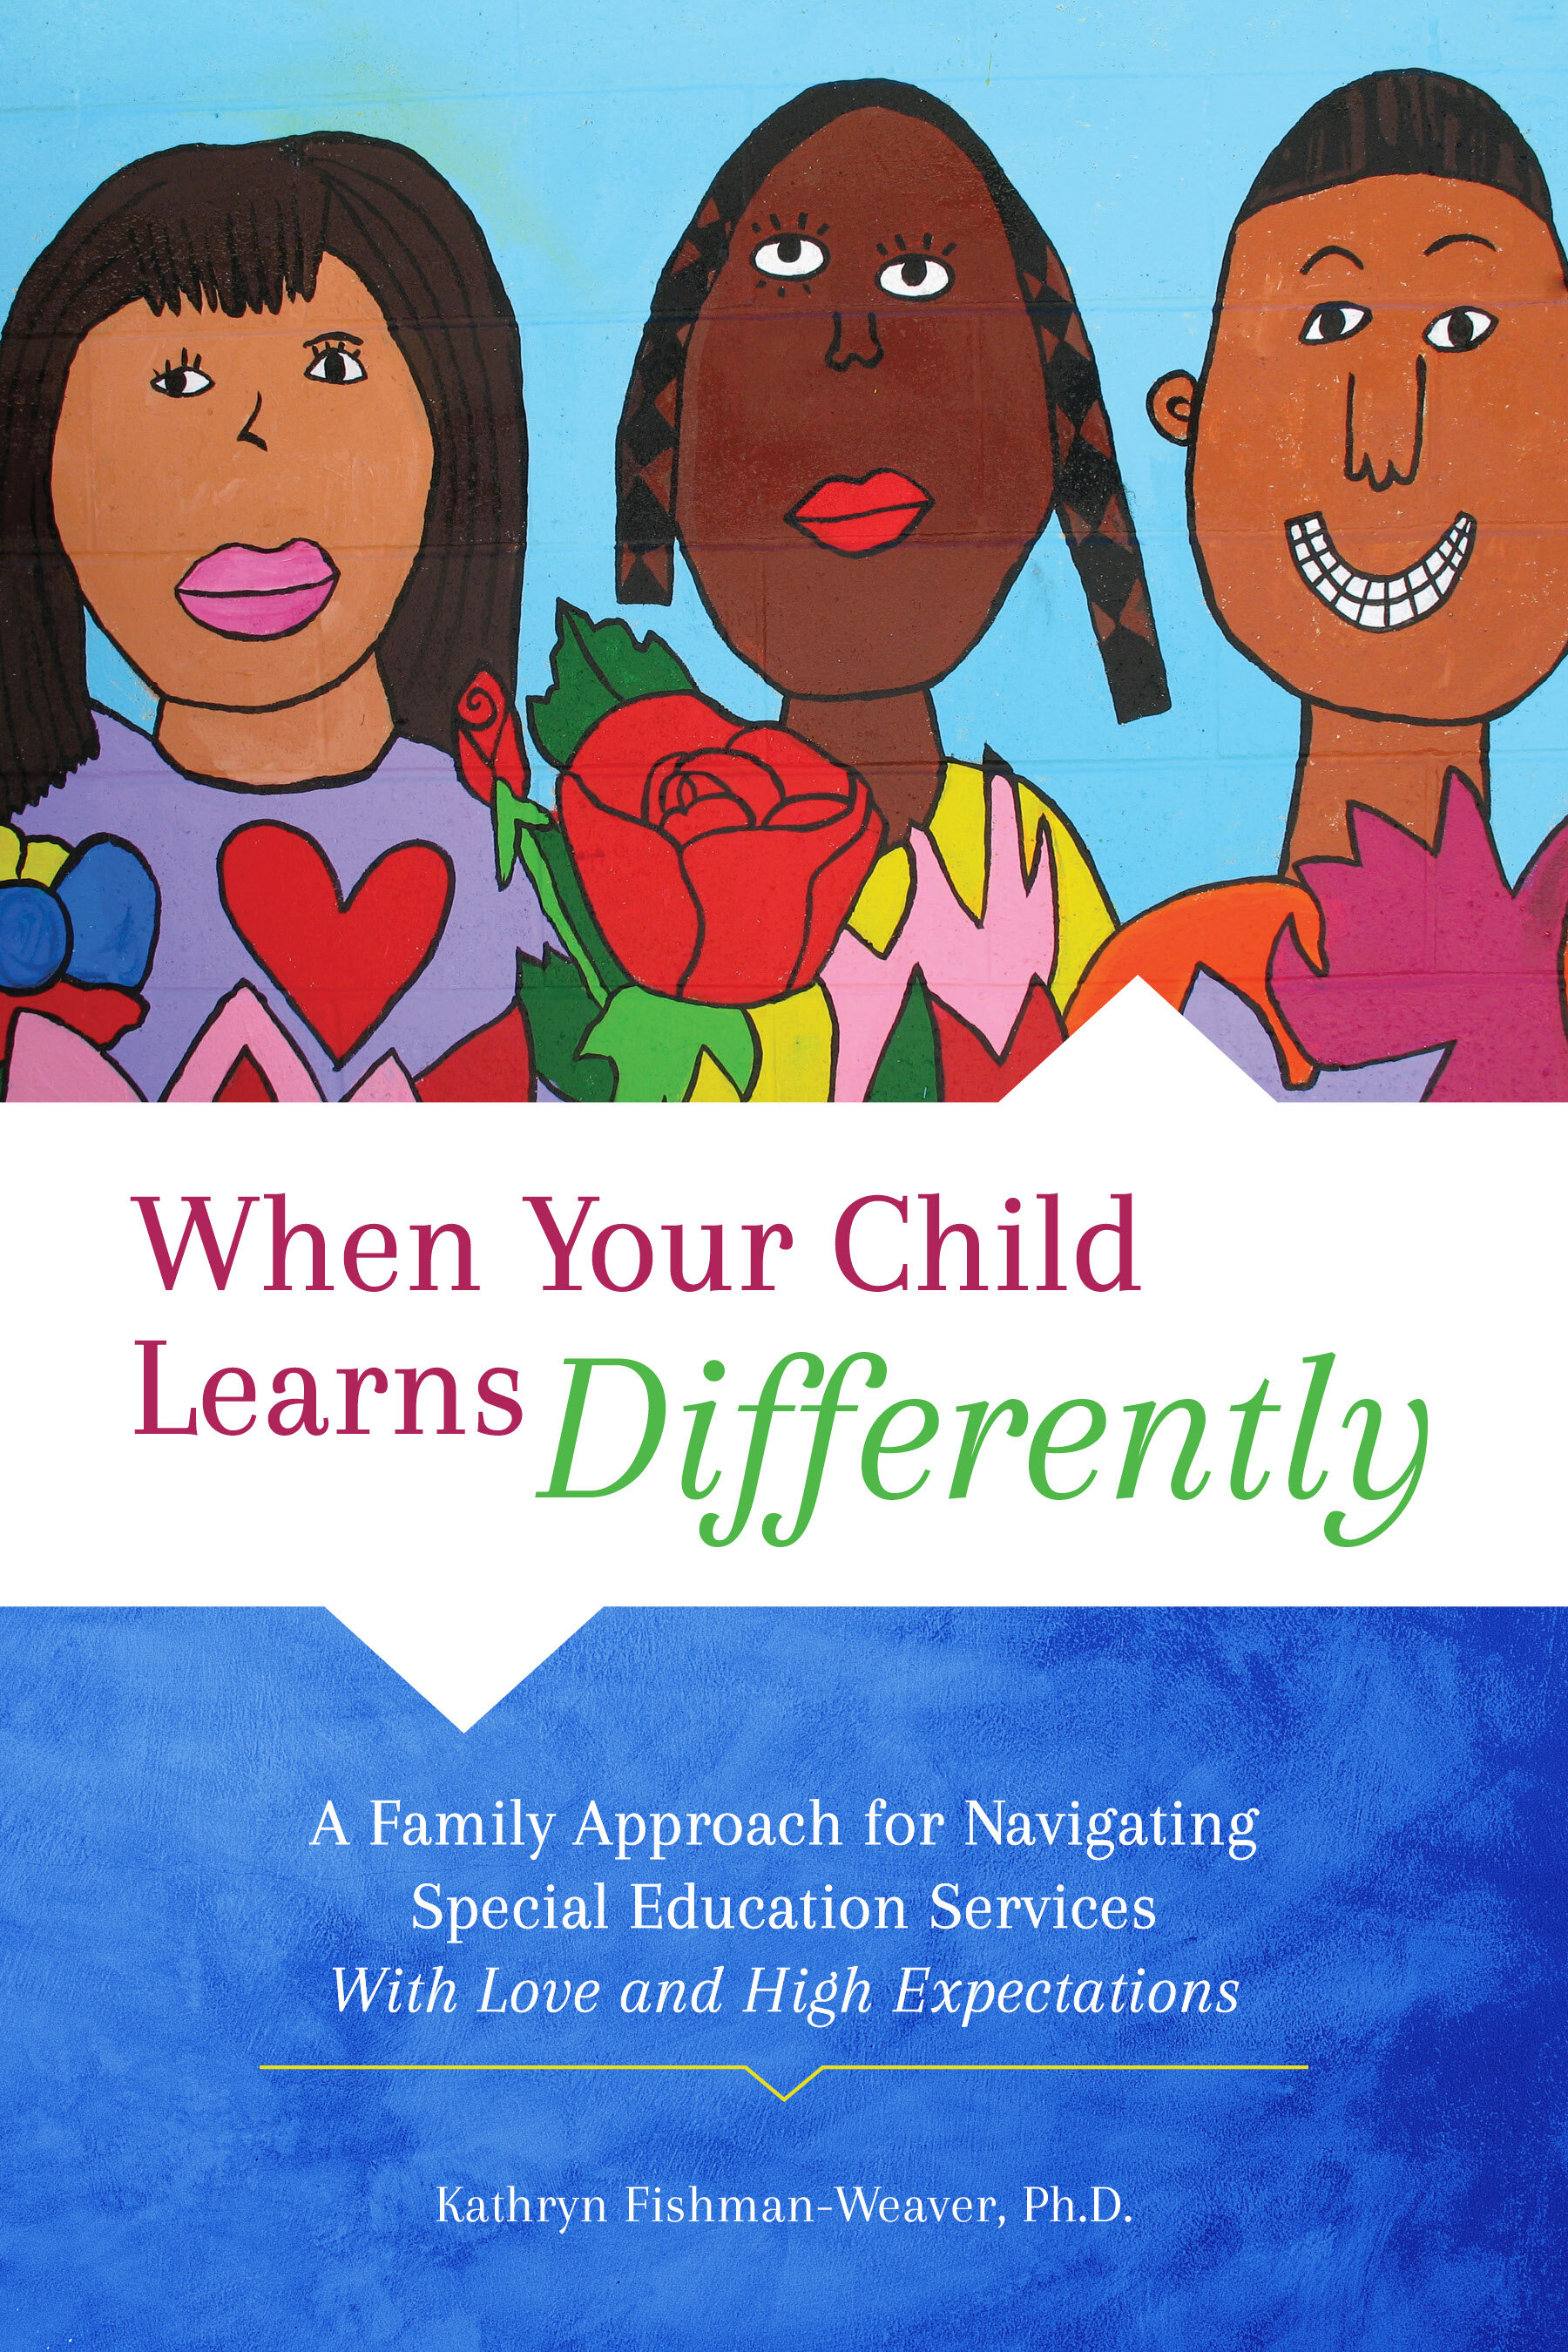 When Your Child Learns Differently Cover.jpg